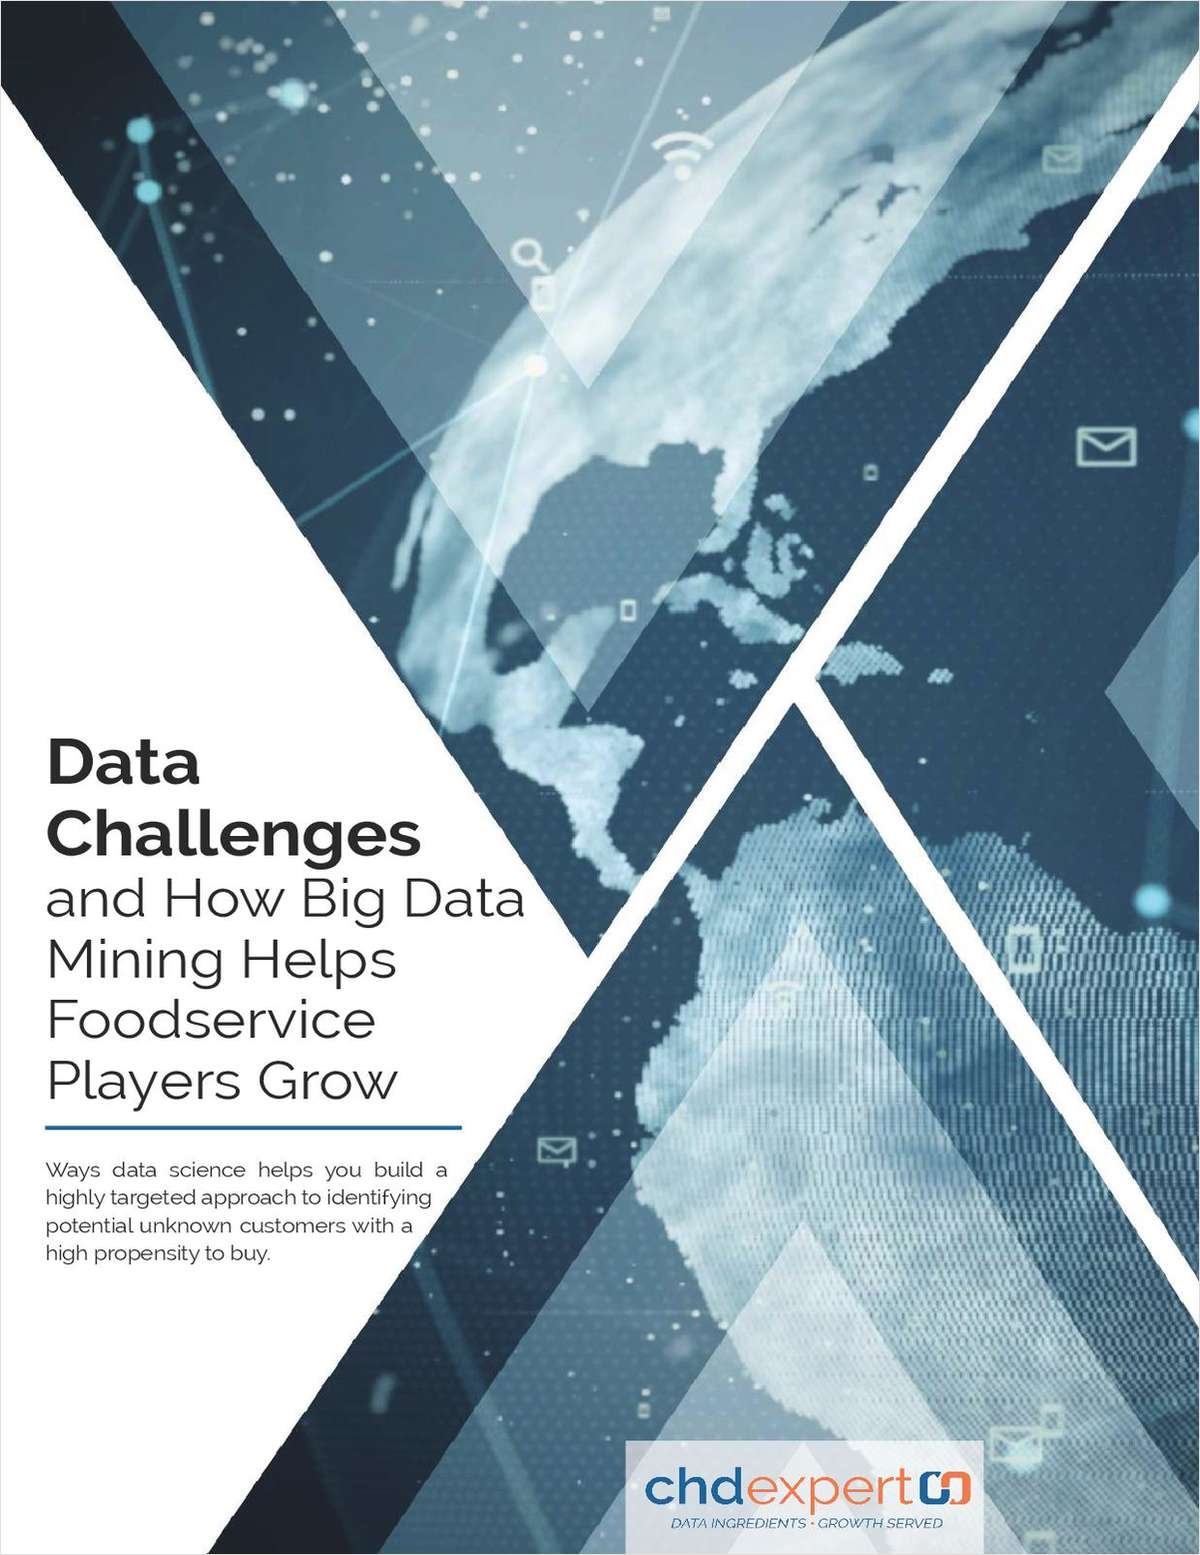 The Biggest Data Challenges Affecting the Foodservice Industry